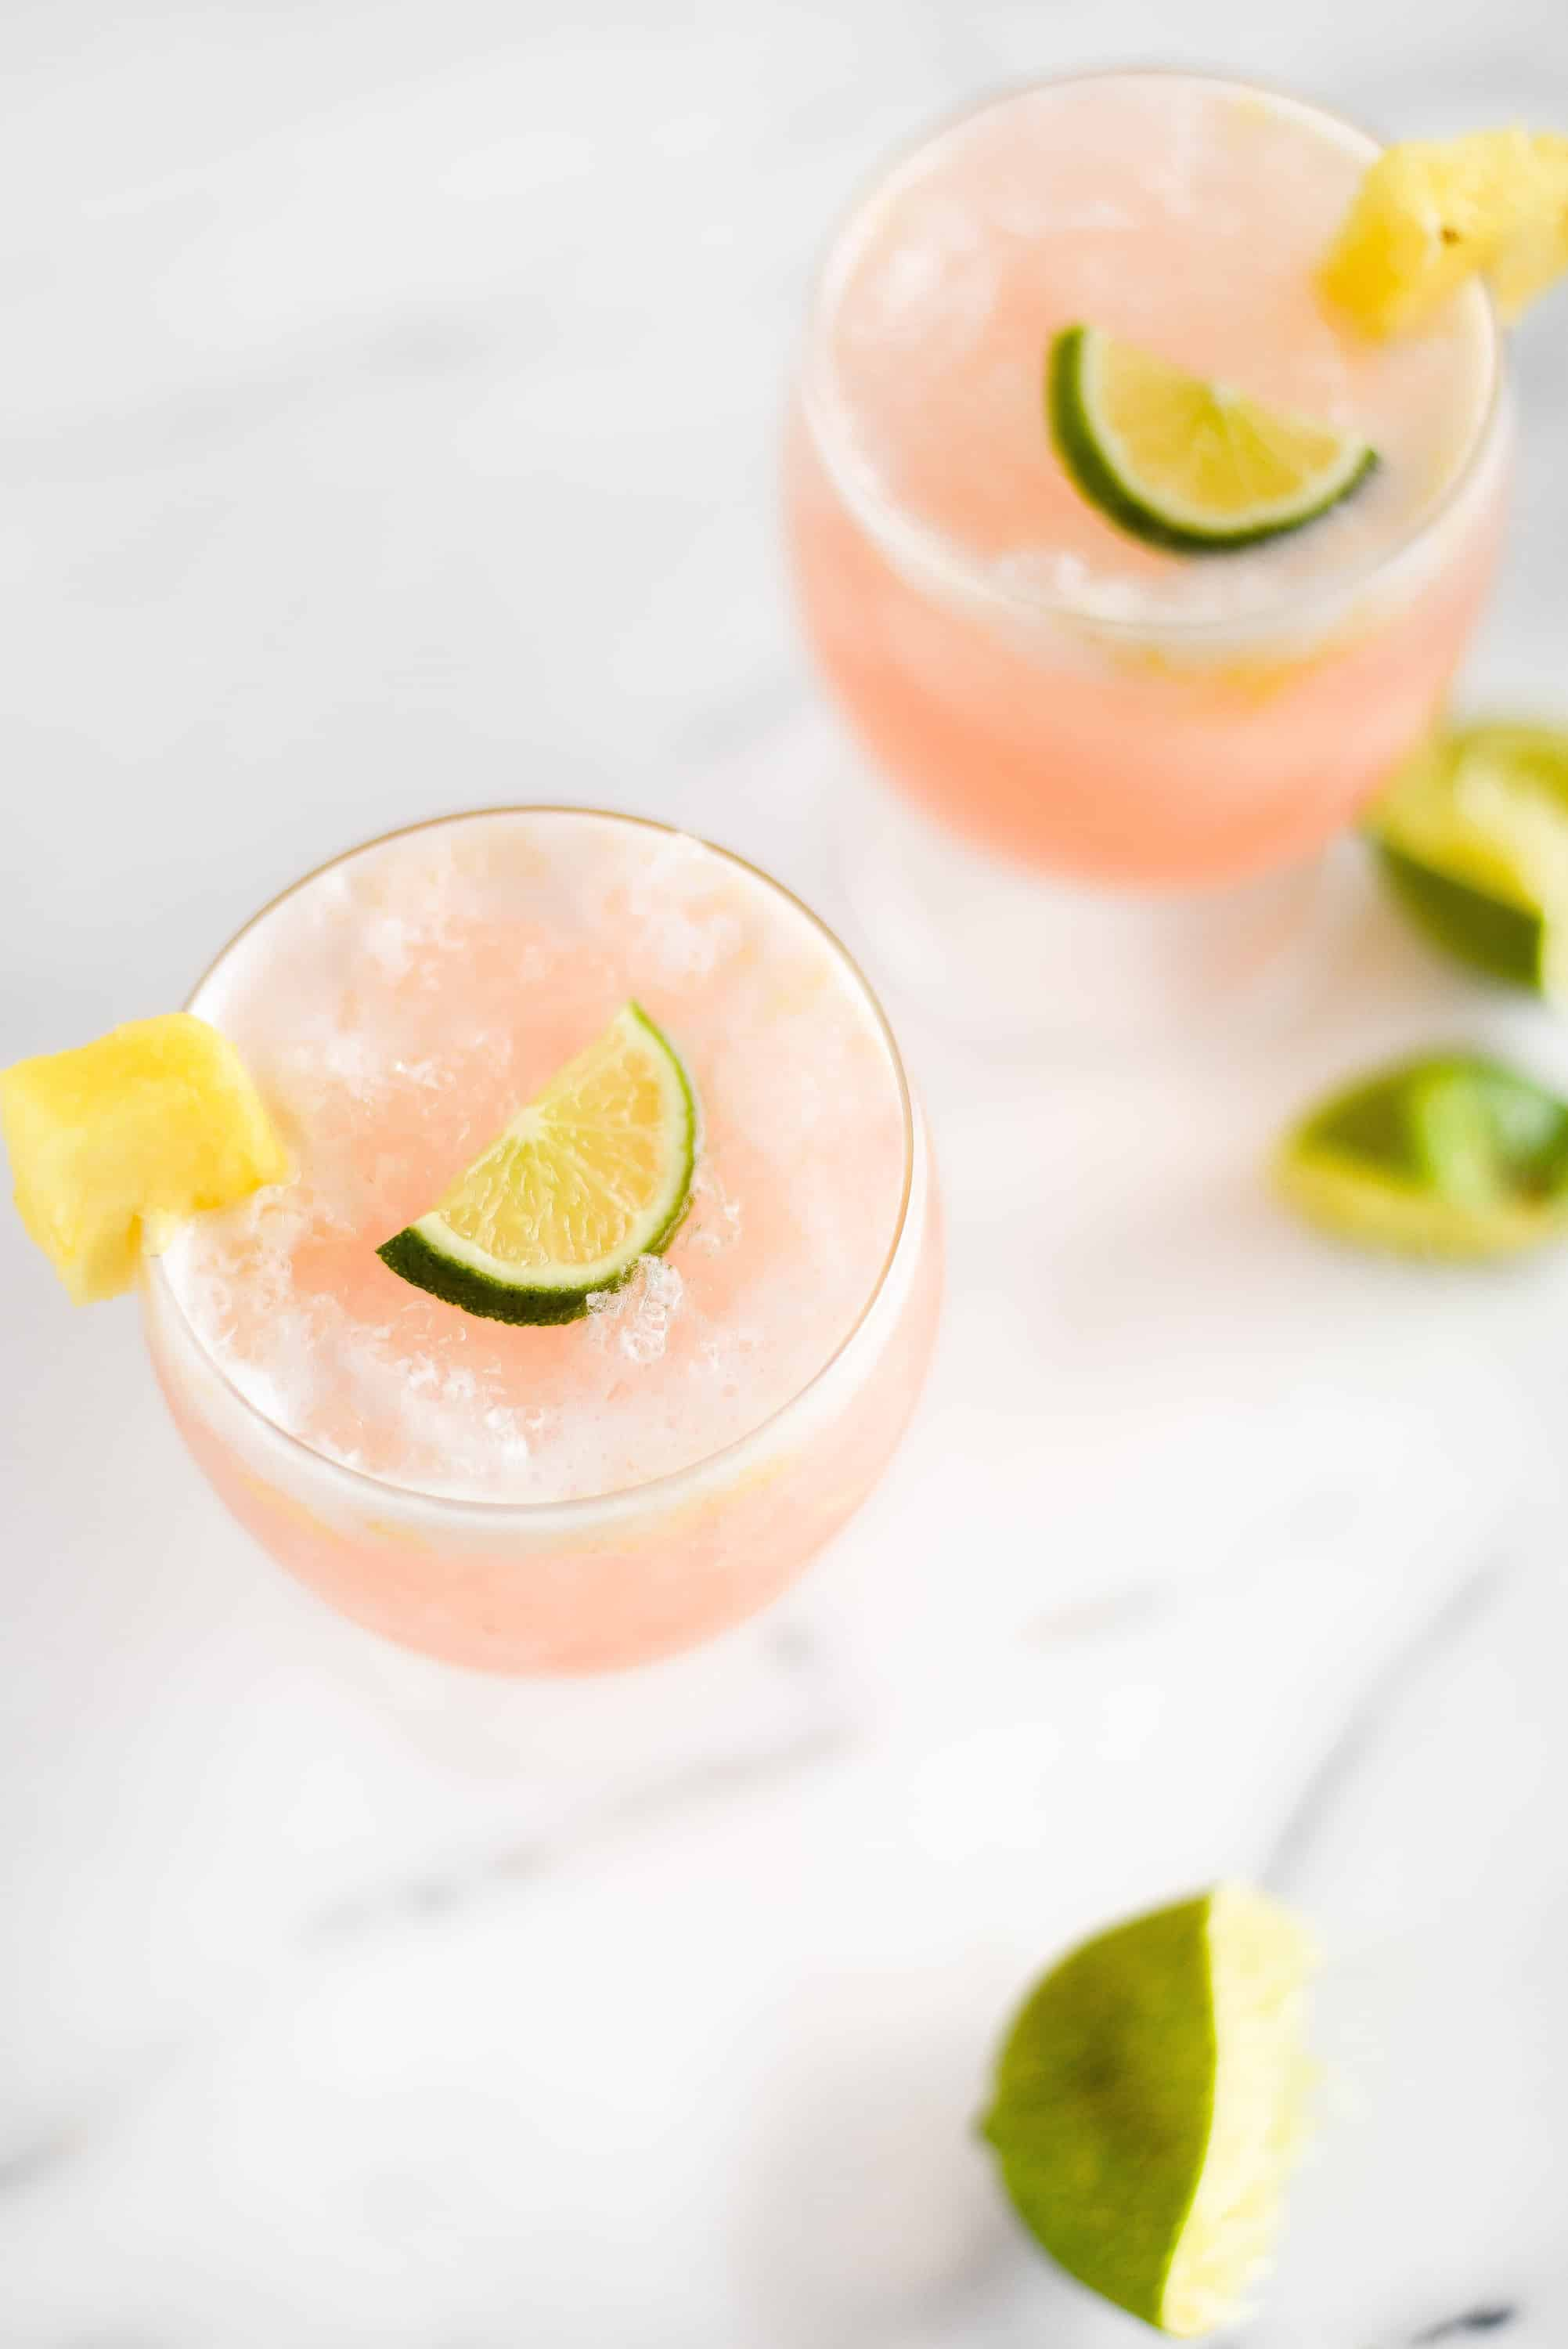 LaCroix is a wonderful way to lighten up cocktails without sacrificing flavor. You'll love this pineapple, coconut, guava, and lime cocktail, it tastes like paradise in a glass!